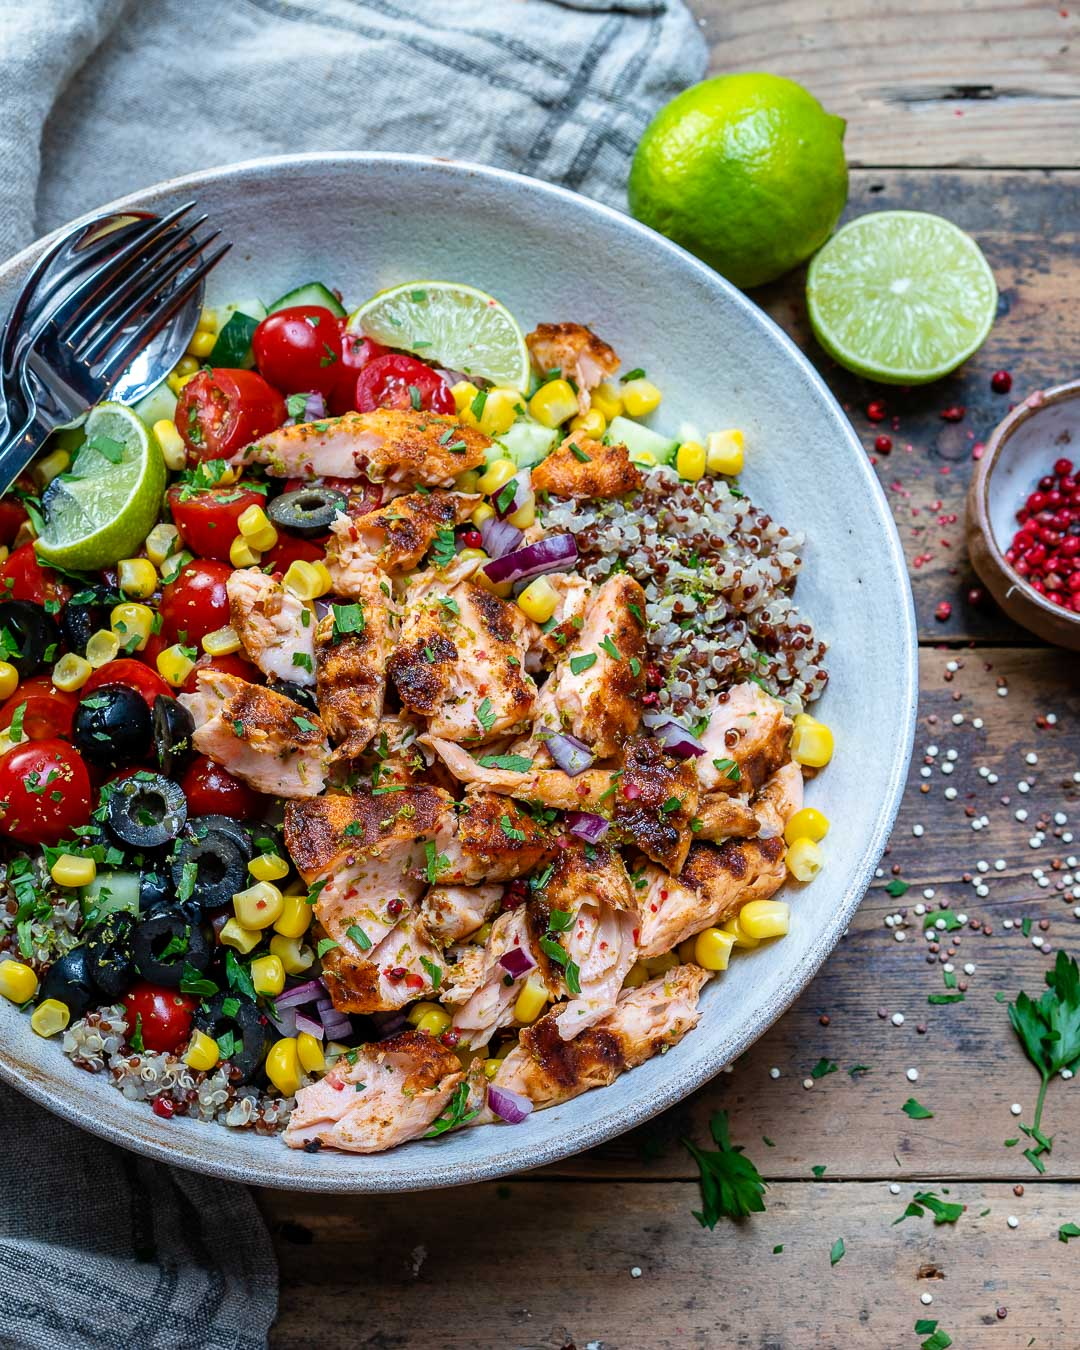 Healthy Grilled Salmon Bowl With Vegetables and Quinoa-9